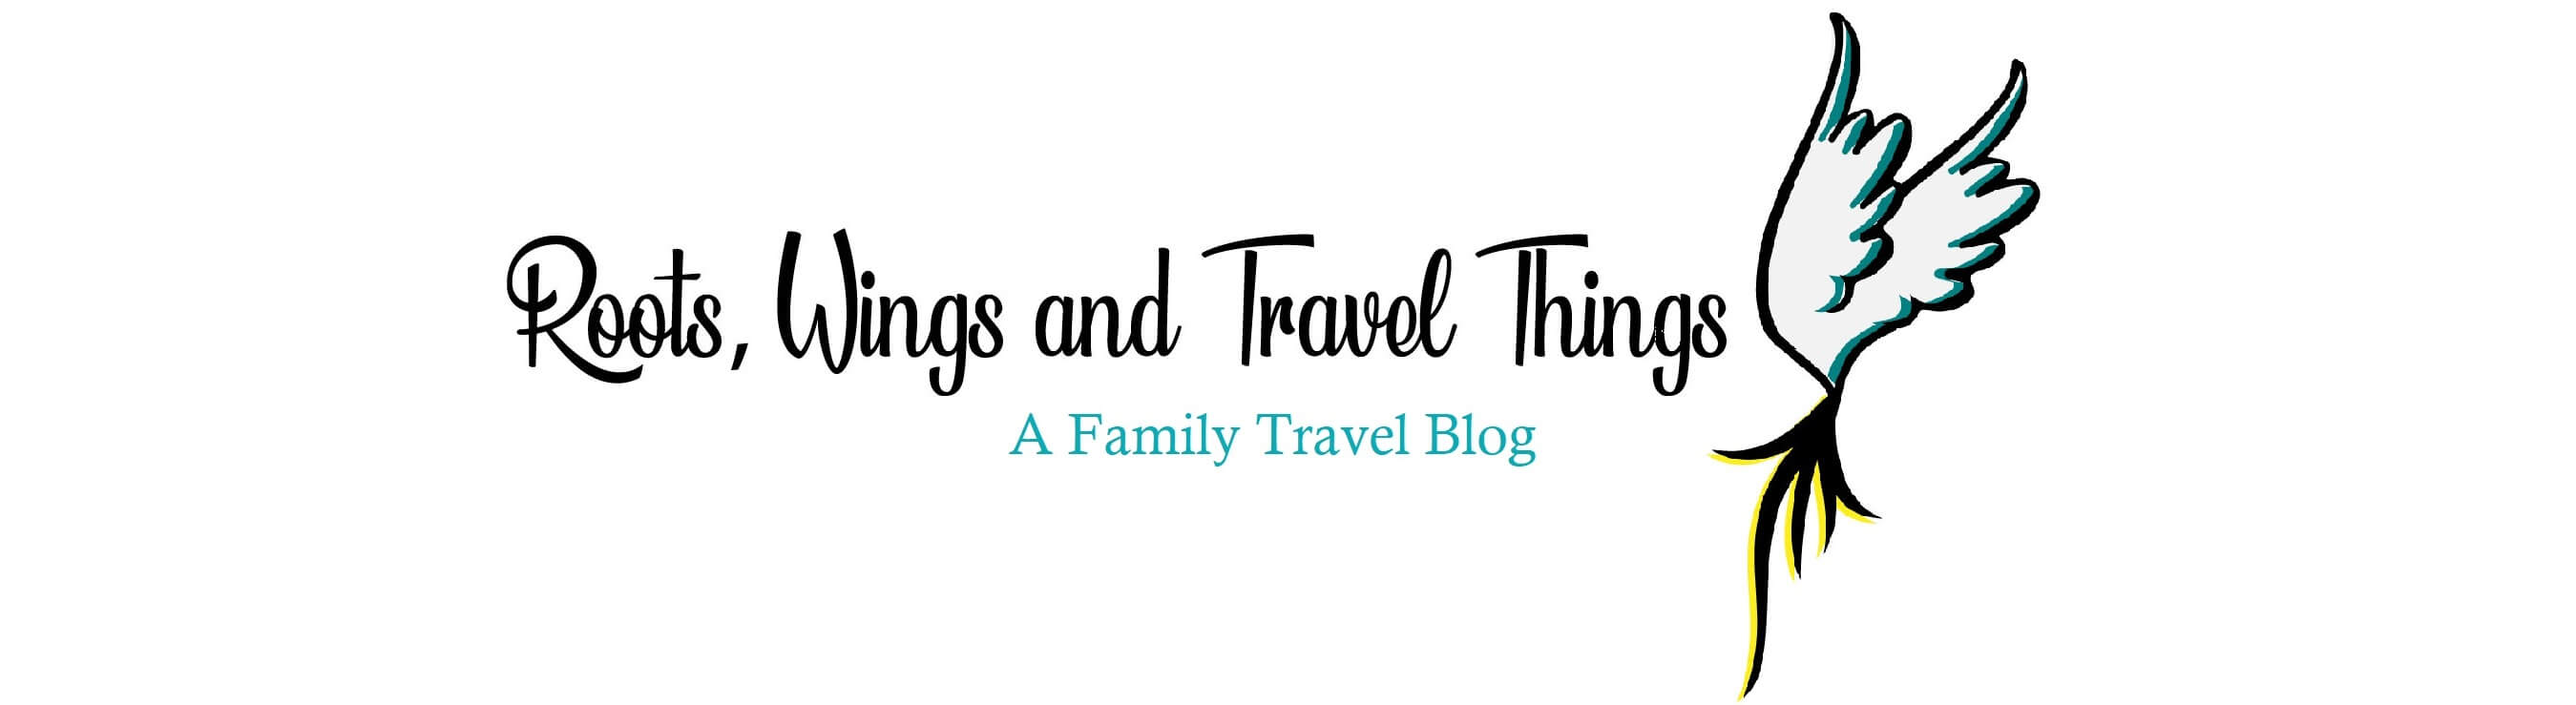 Roots, Wings and Travel Things